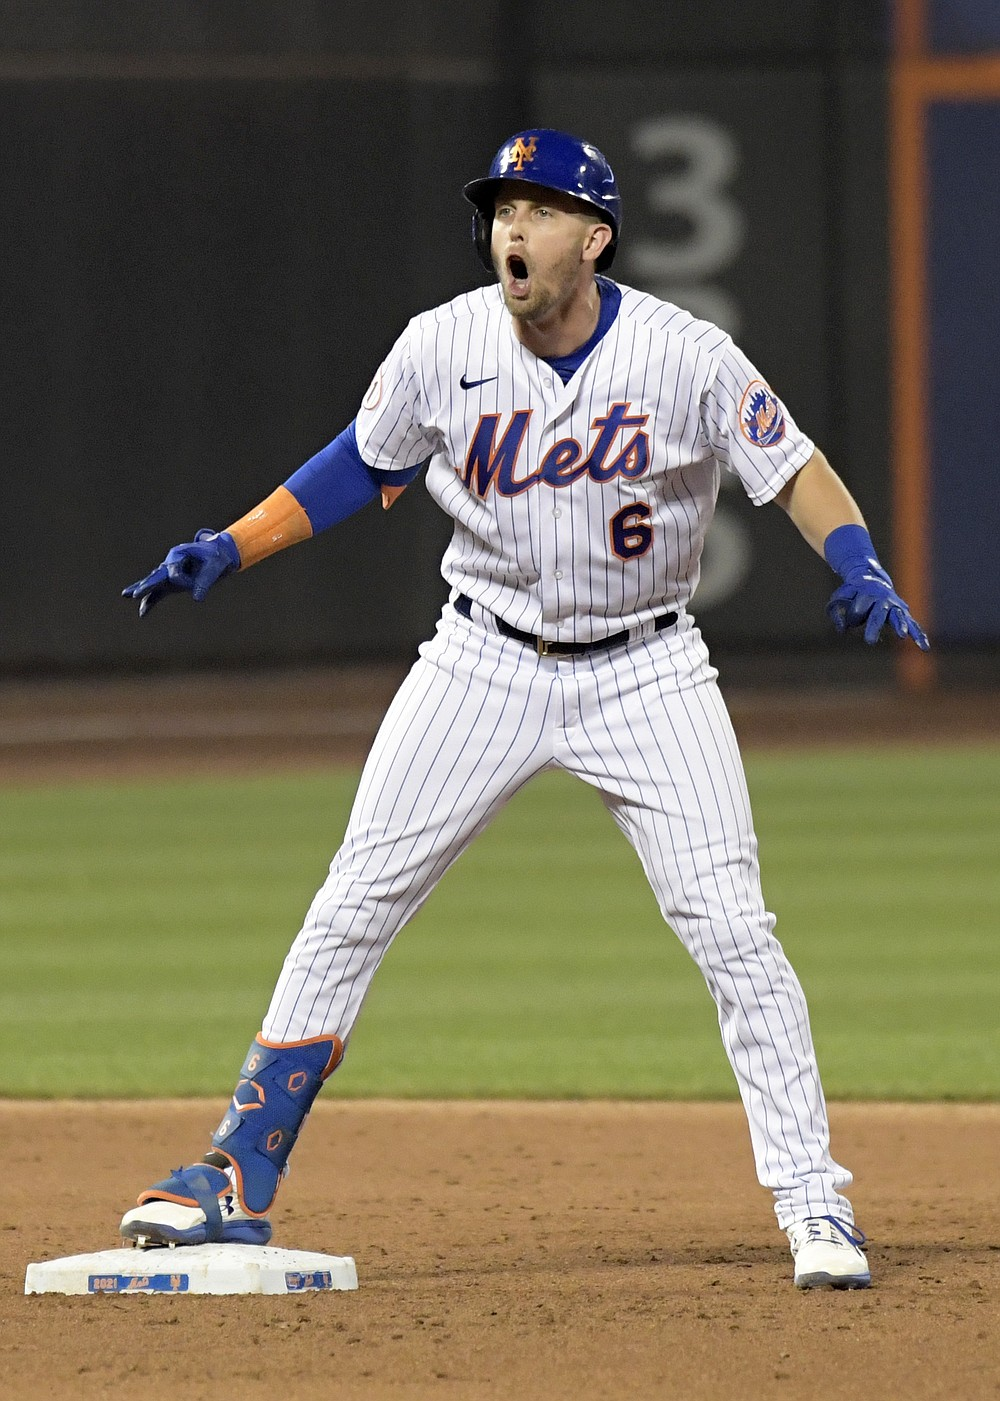 New York Mets' Jeff McNeil reacts after hitting an RBI-double, scoring Brandon Nimmo, in the fifth inning of the second game of a baseball doubleheader against the Atlanta Braves, Monday, July 26, 2021, in New York. (AP Photo/Bill Kostroun)